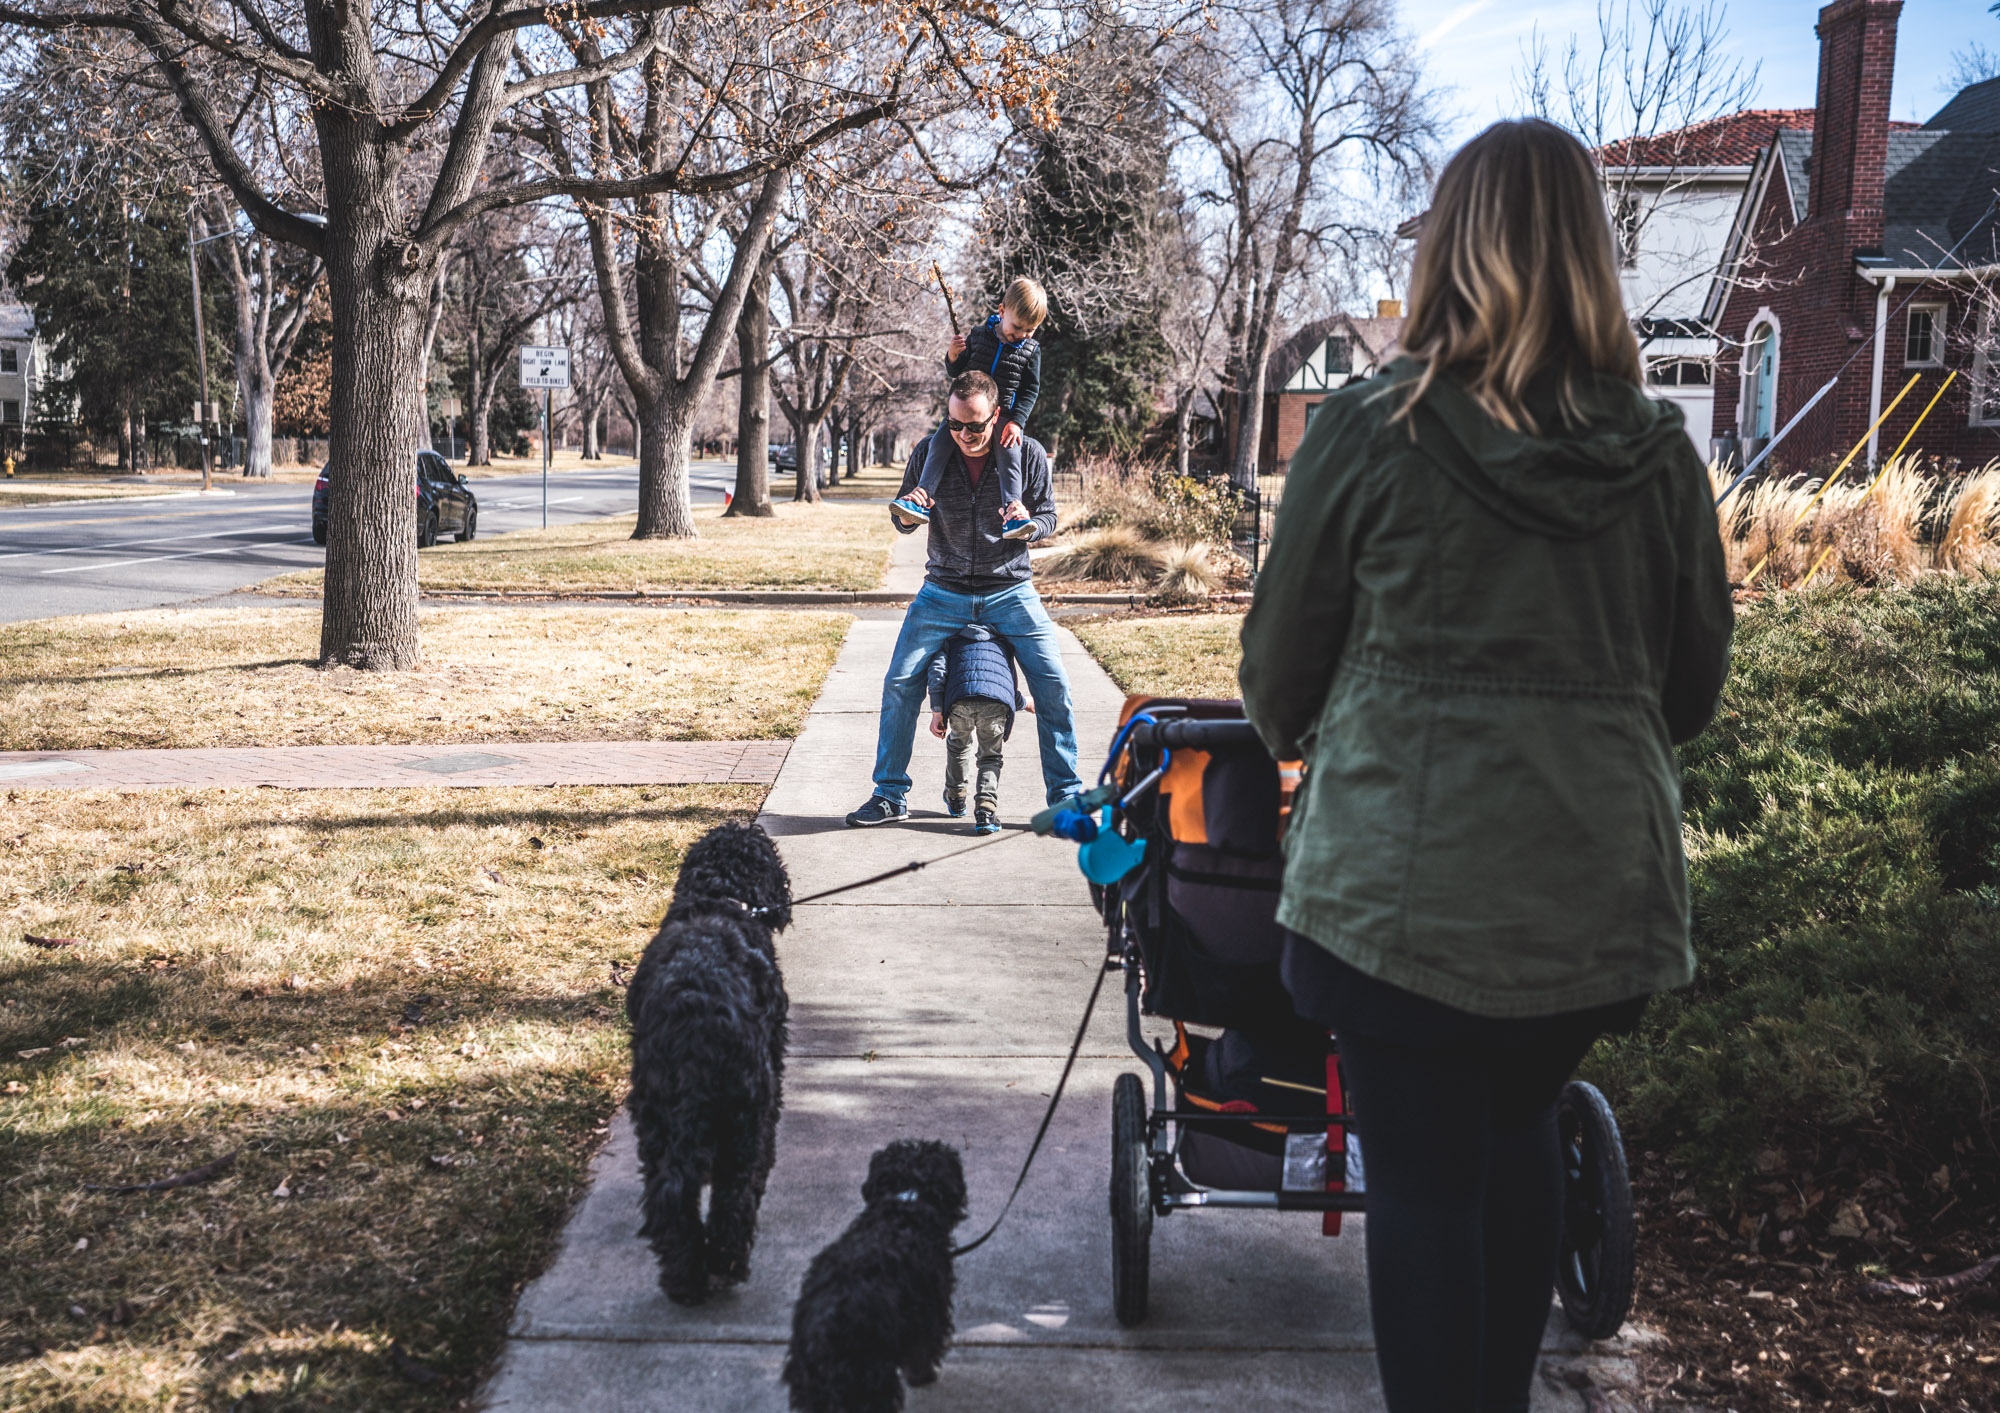 Color photo of a mother pushing a stroller and walking two black dogs while her husband, who's in front of her on the sidewalk, holds one son on his shoulders as the other runs underneath his legs. Photo taken in Park Hill, Denver, Colorado during the family's documentary family photography session.